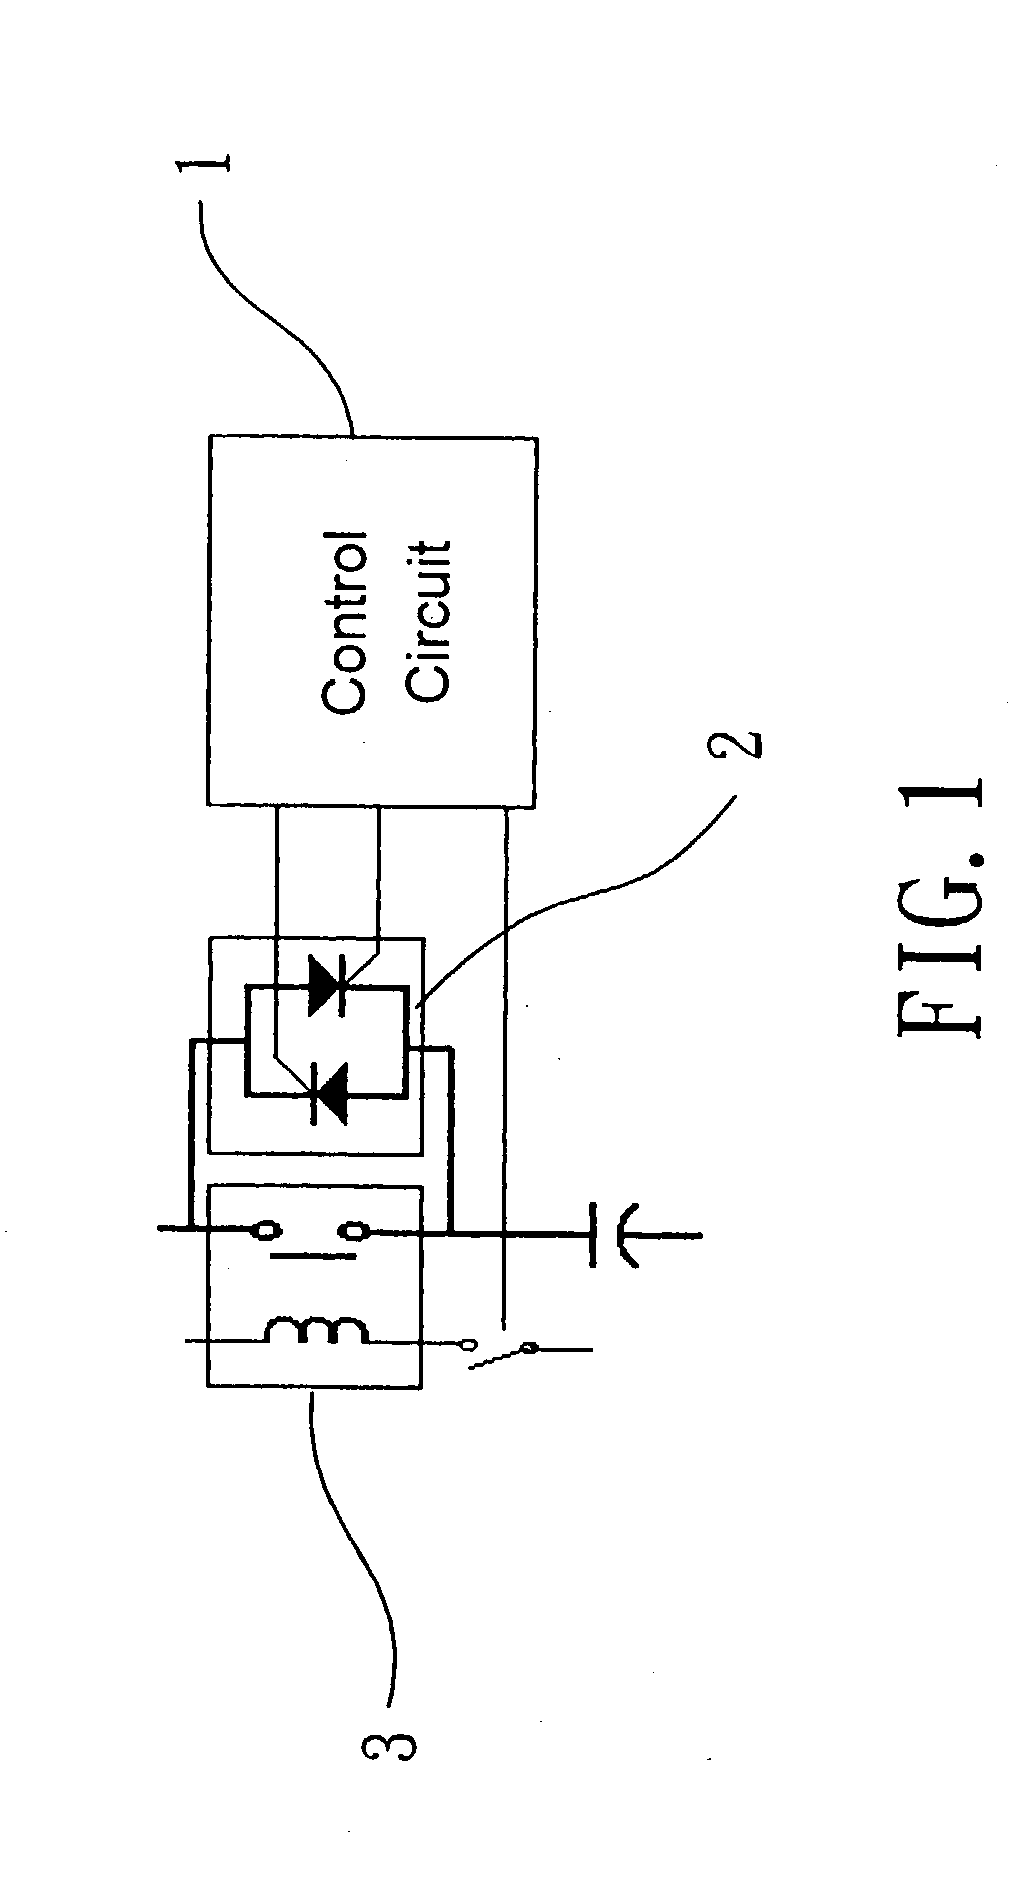 Us20030184926 Hybrid Switch Module For An Ac Power Fan Automatic Circuit Controlcircuit Diagram Patent Drawing